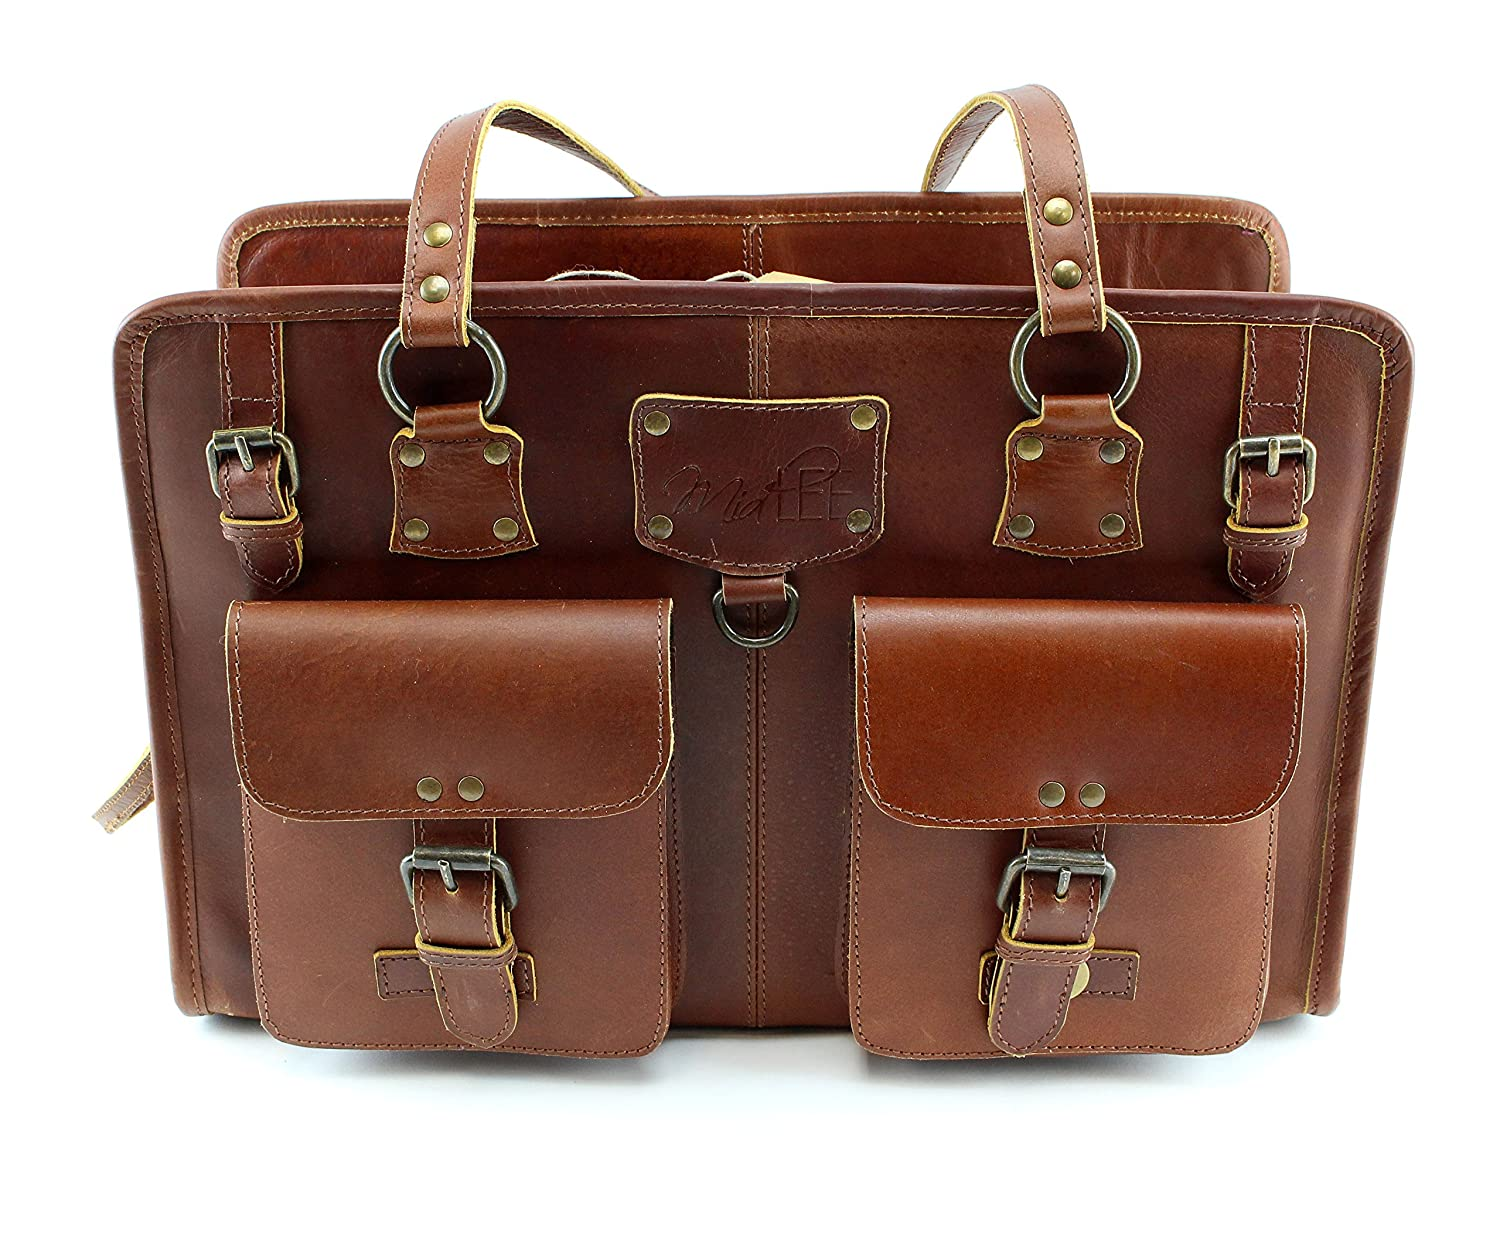 Midlee Brown Leather Dog Purse